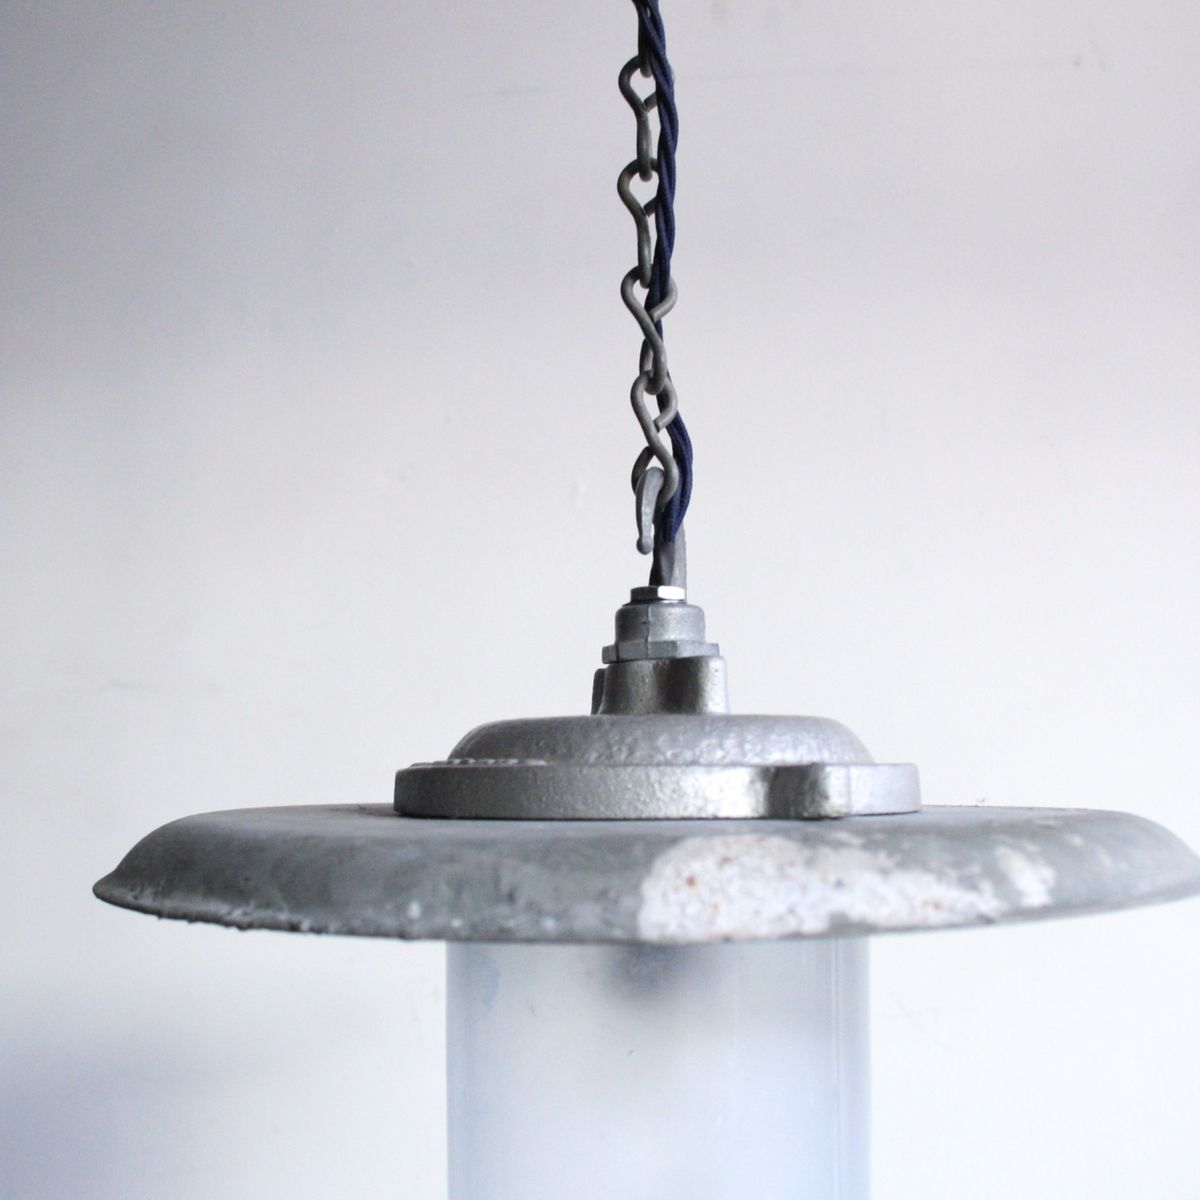 Vintage Industrial Pendant Light With Steel Reflector For